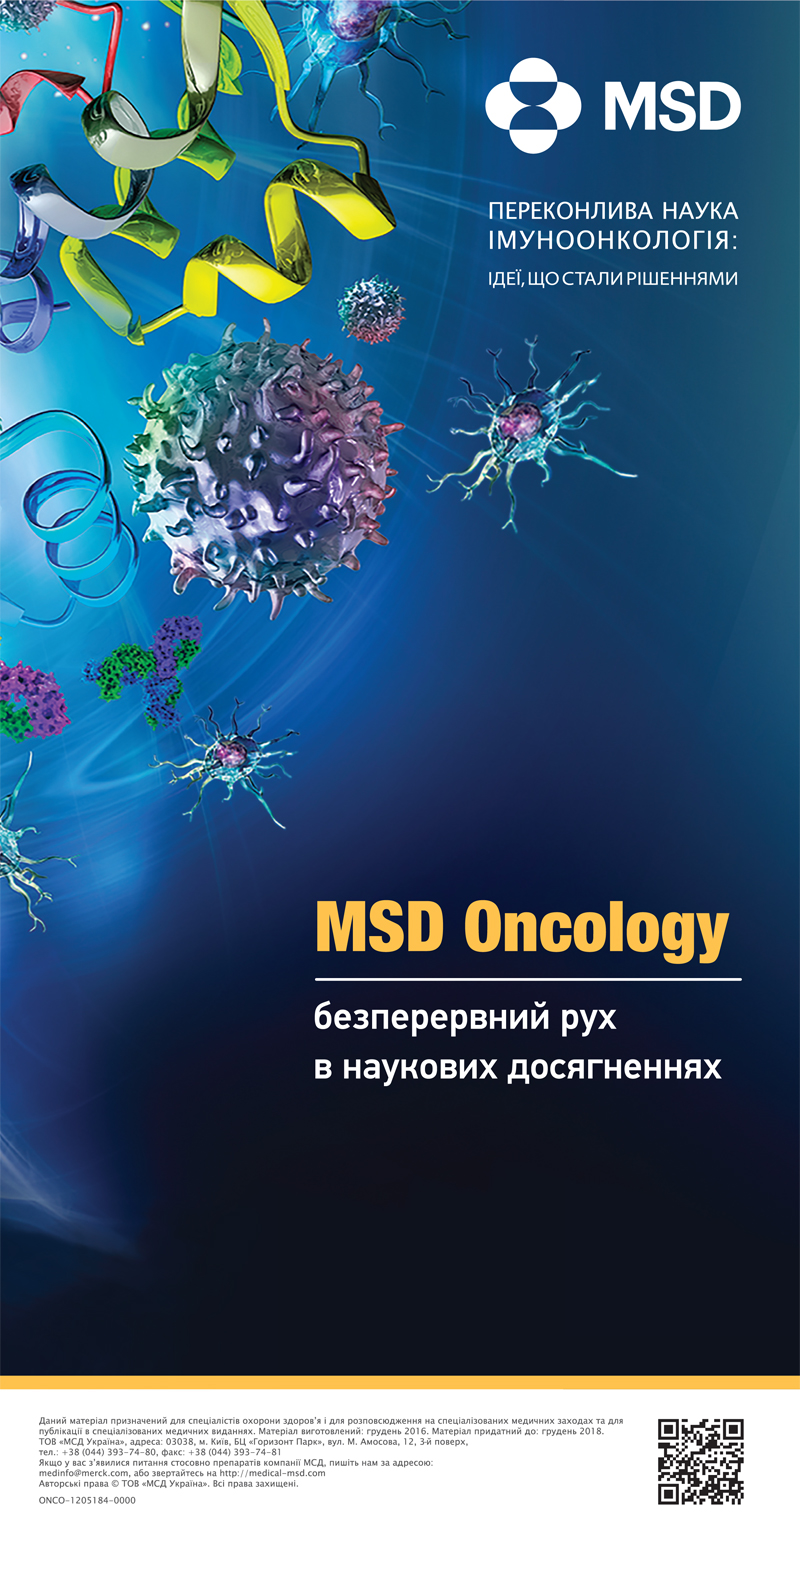 MSD Oncology